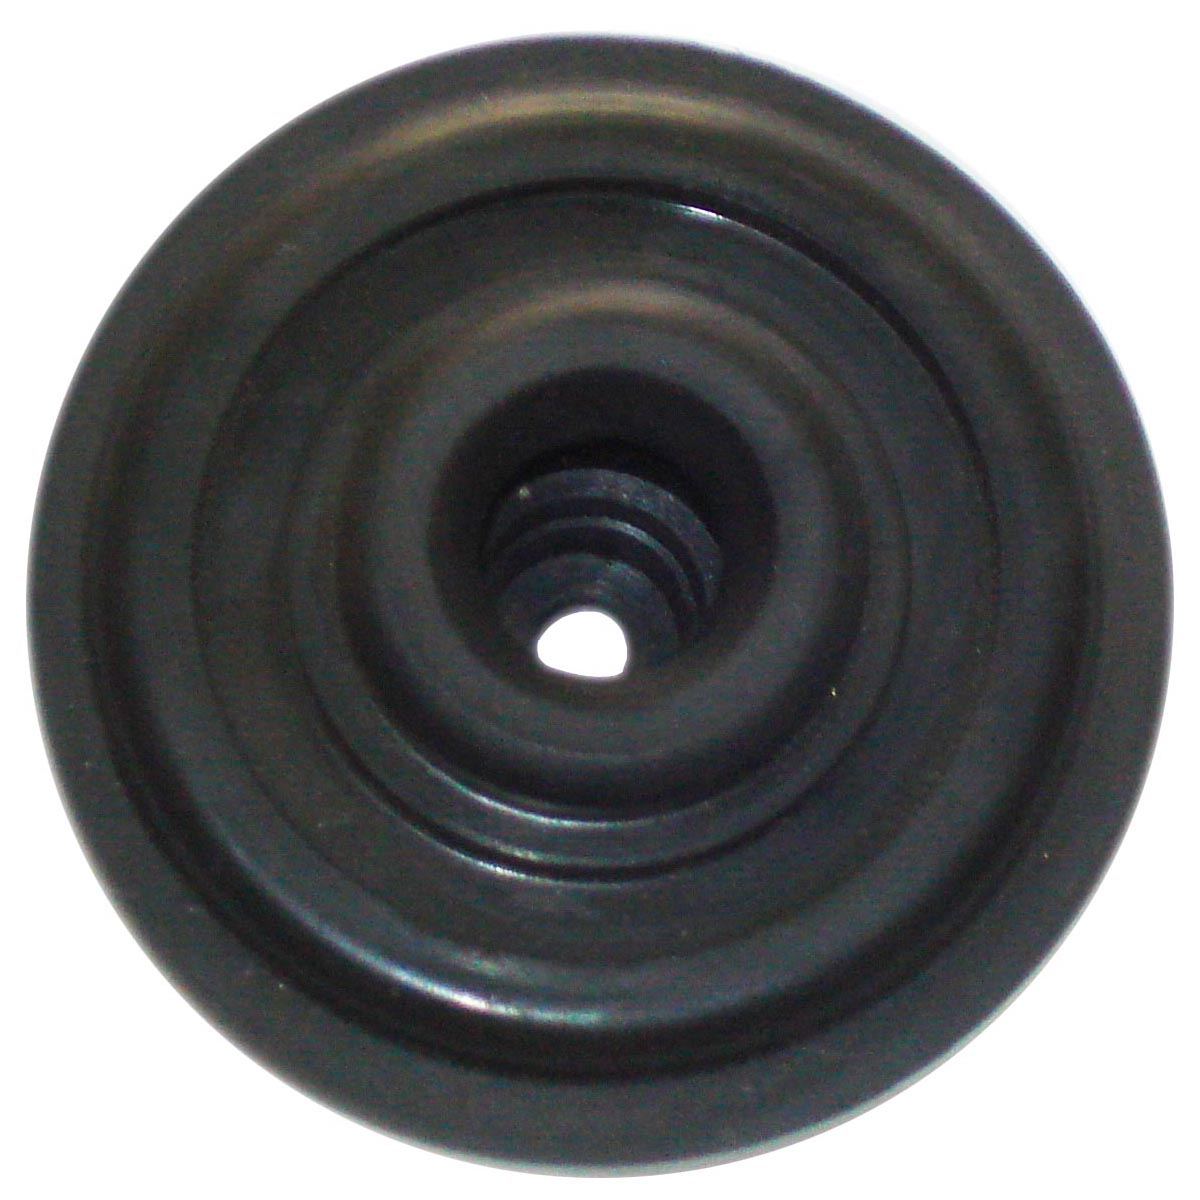 Rubber Seals and Components